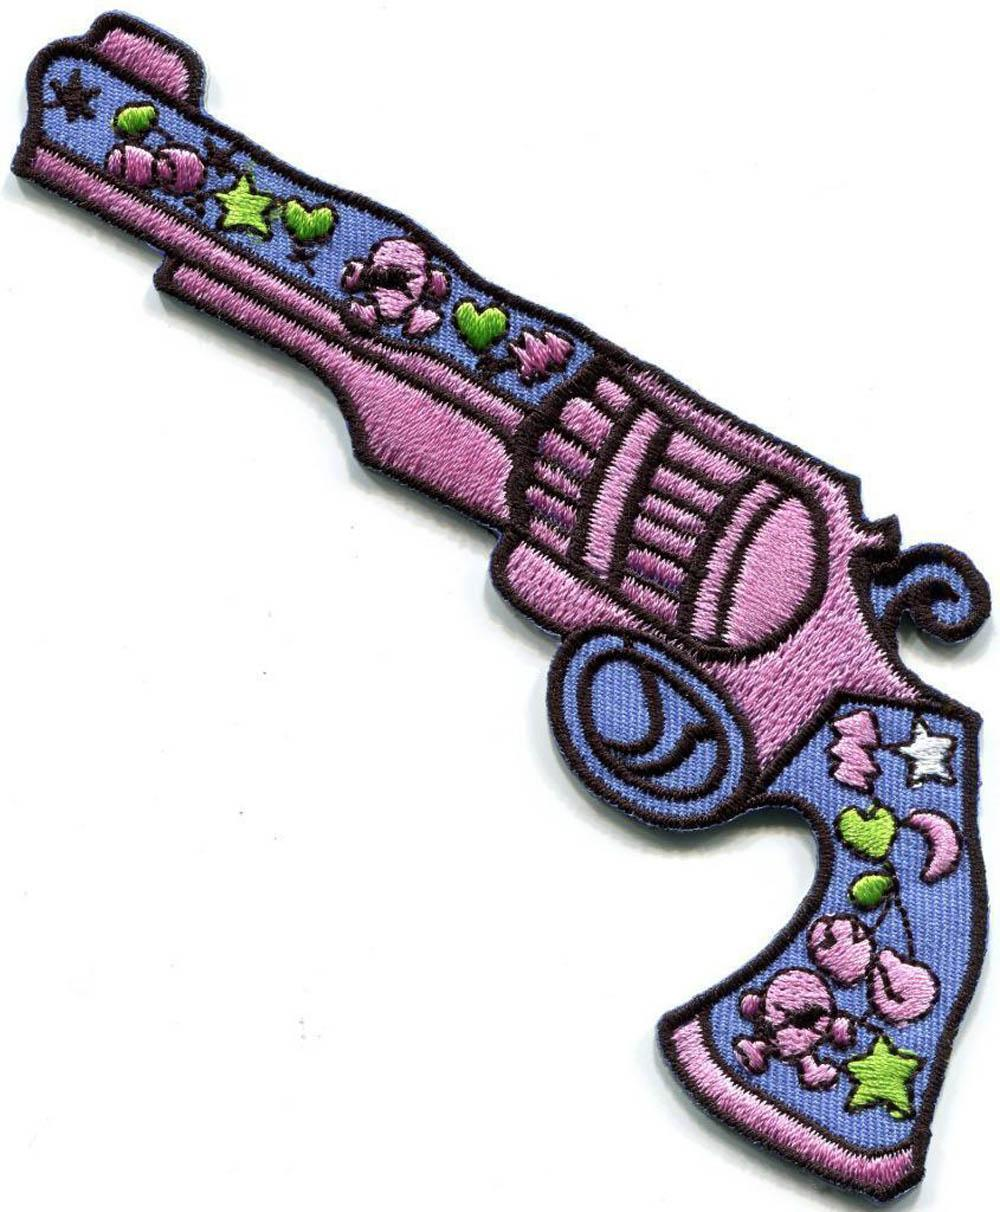 100% embroidery stitches Love Gun flower power hippie embroidered applique iron-on patch new - T170528